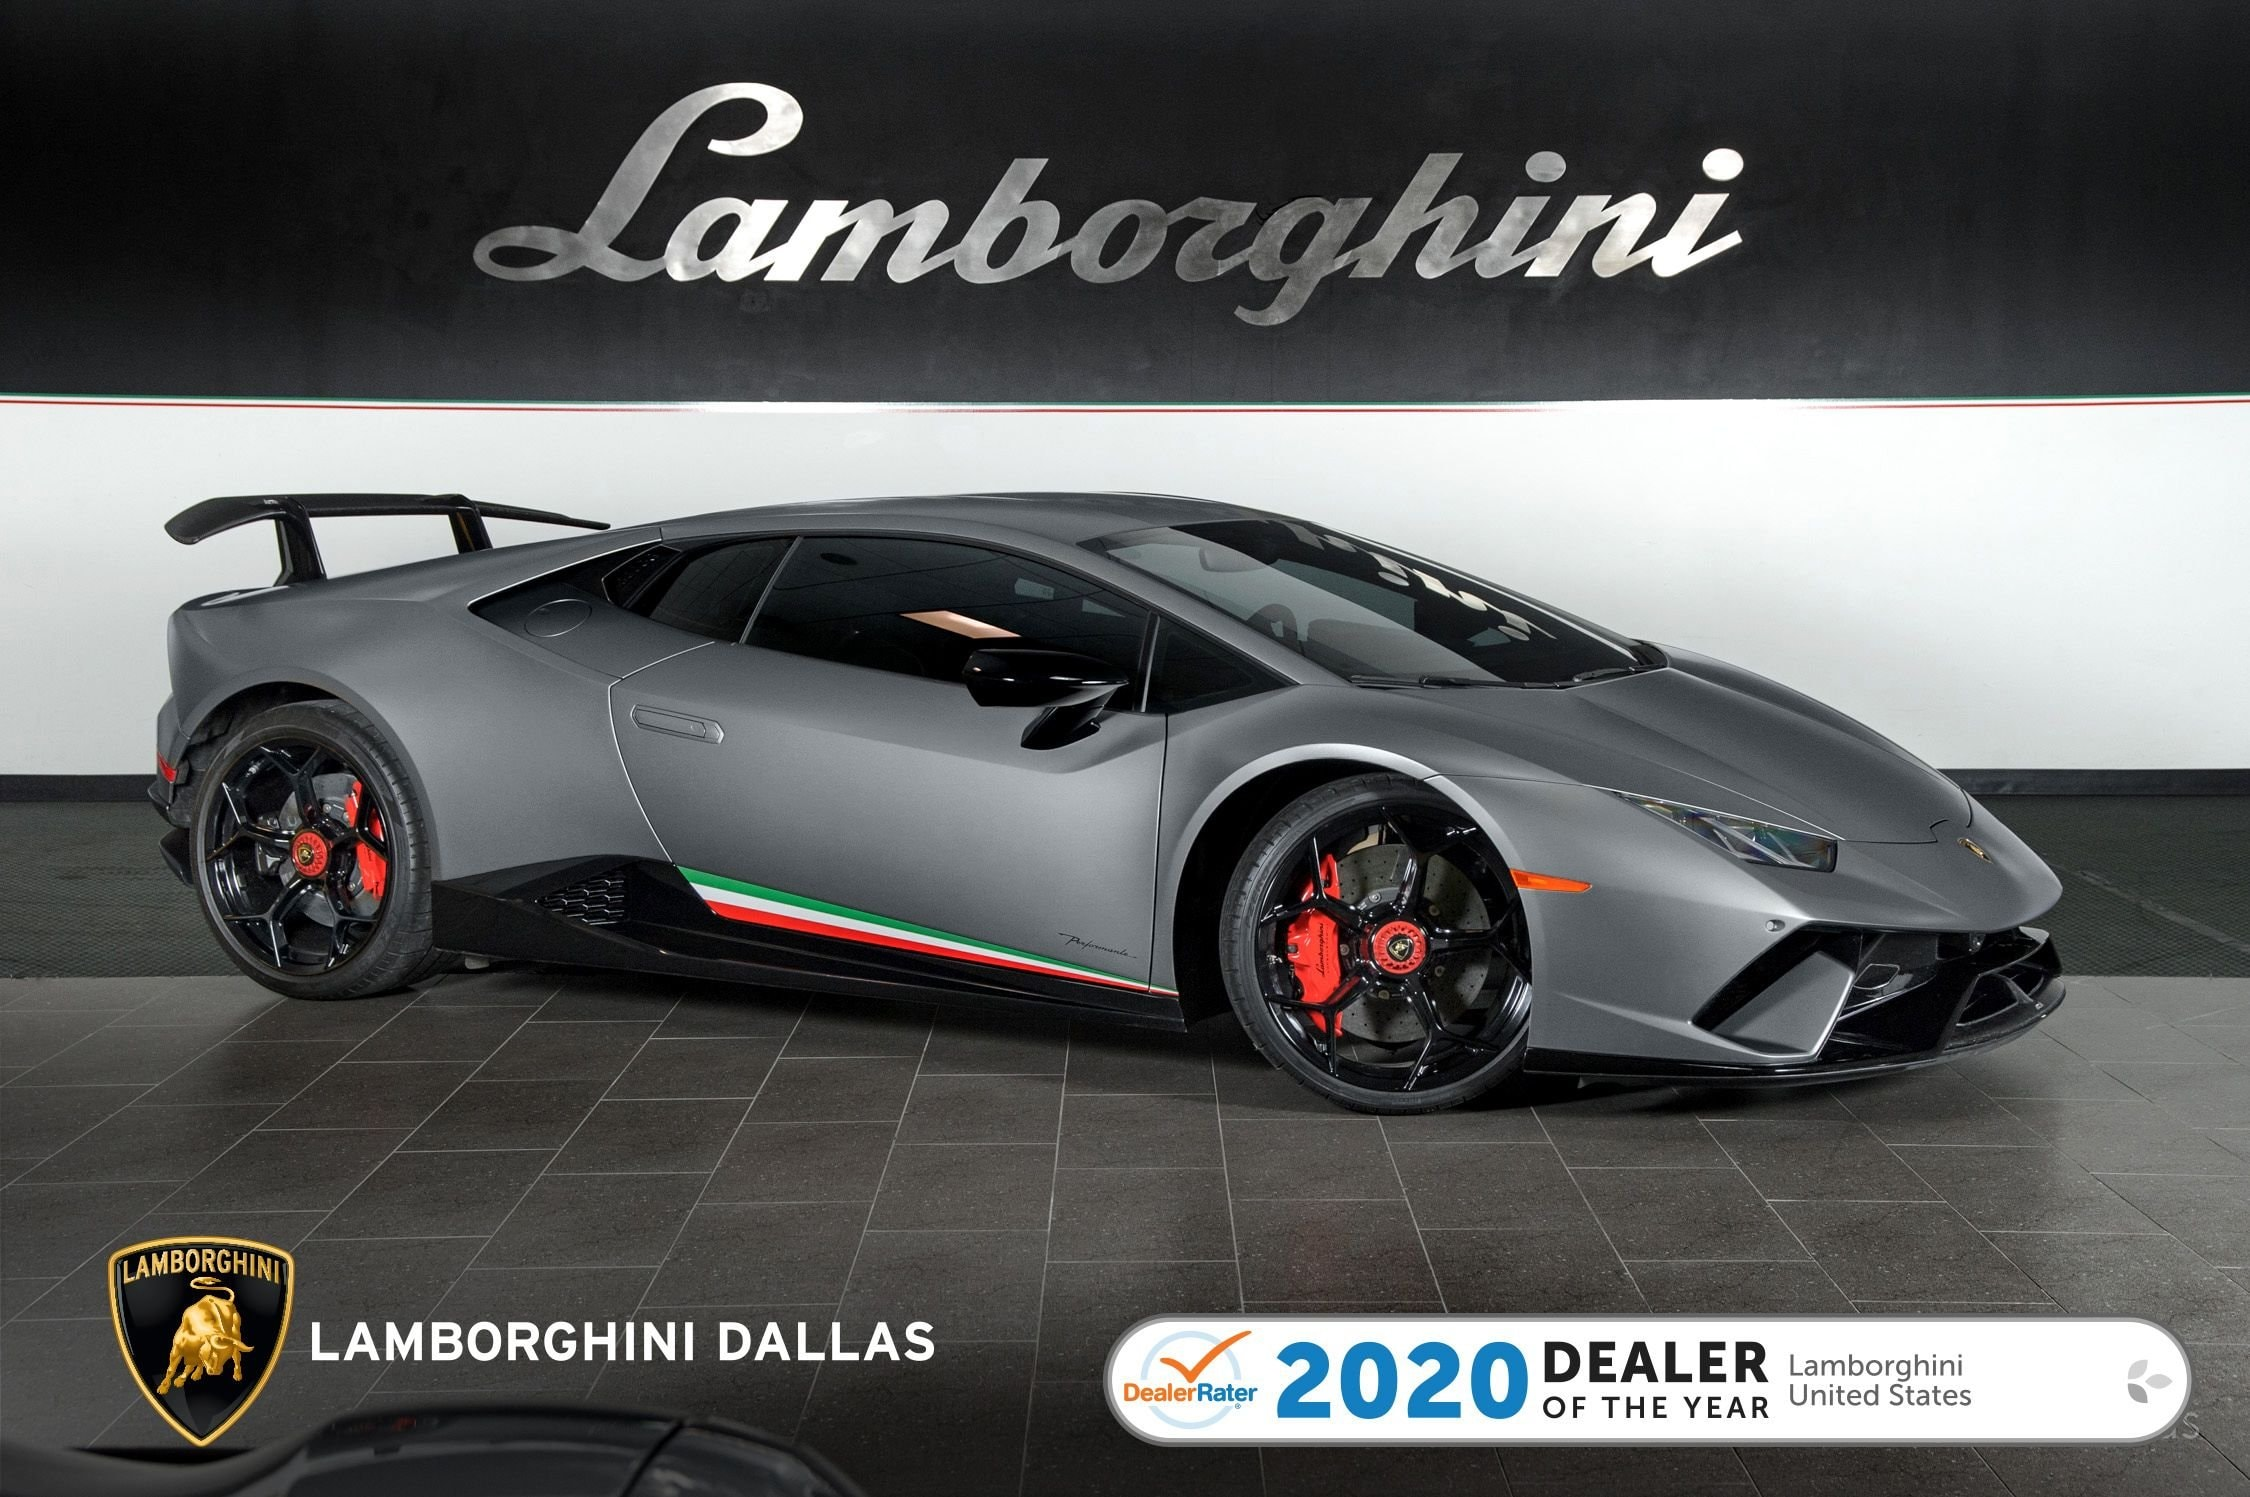 used 2018 Lamborghini Huracan Performante car, priced at $294,999